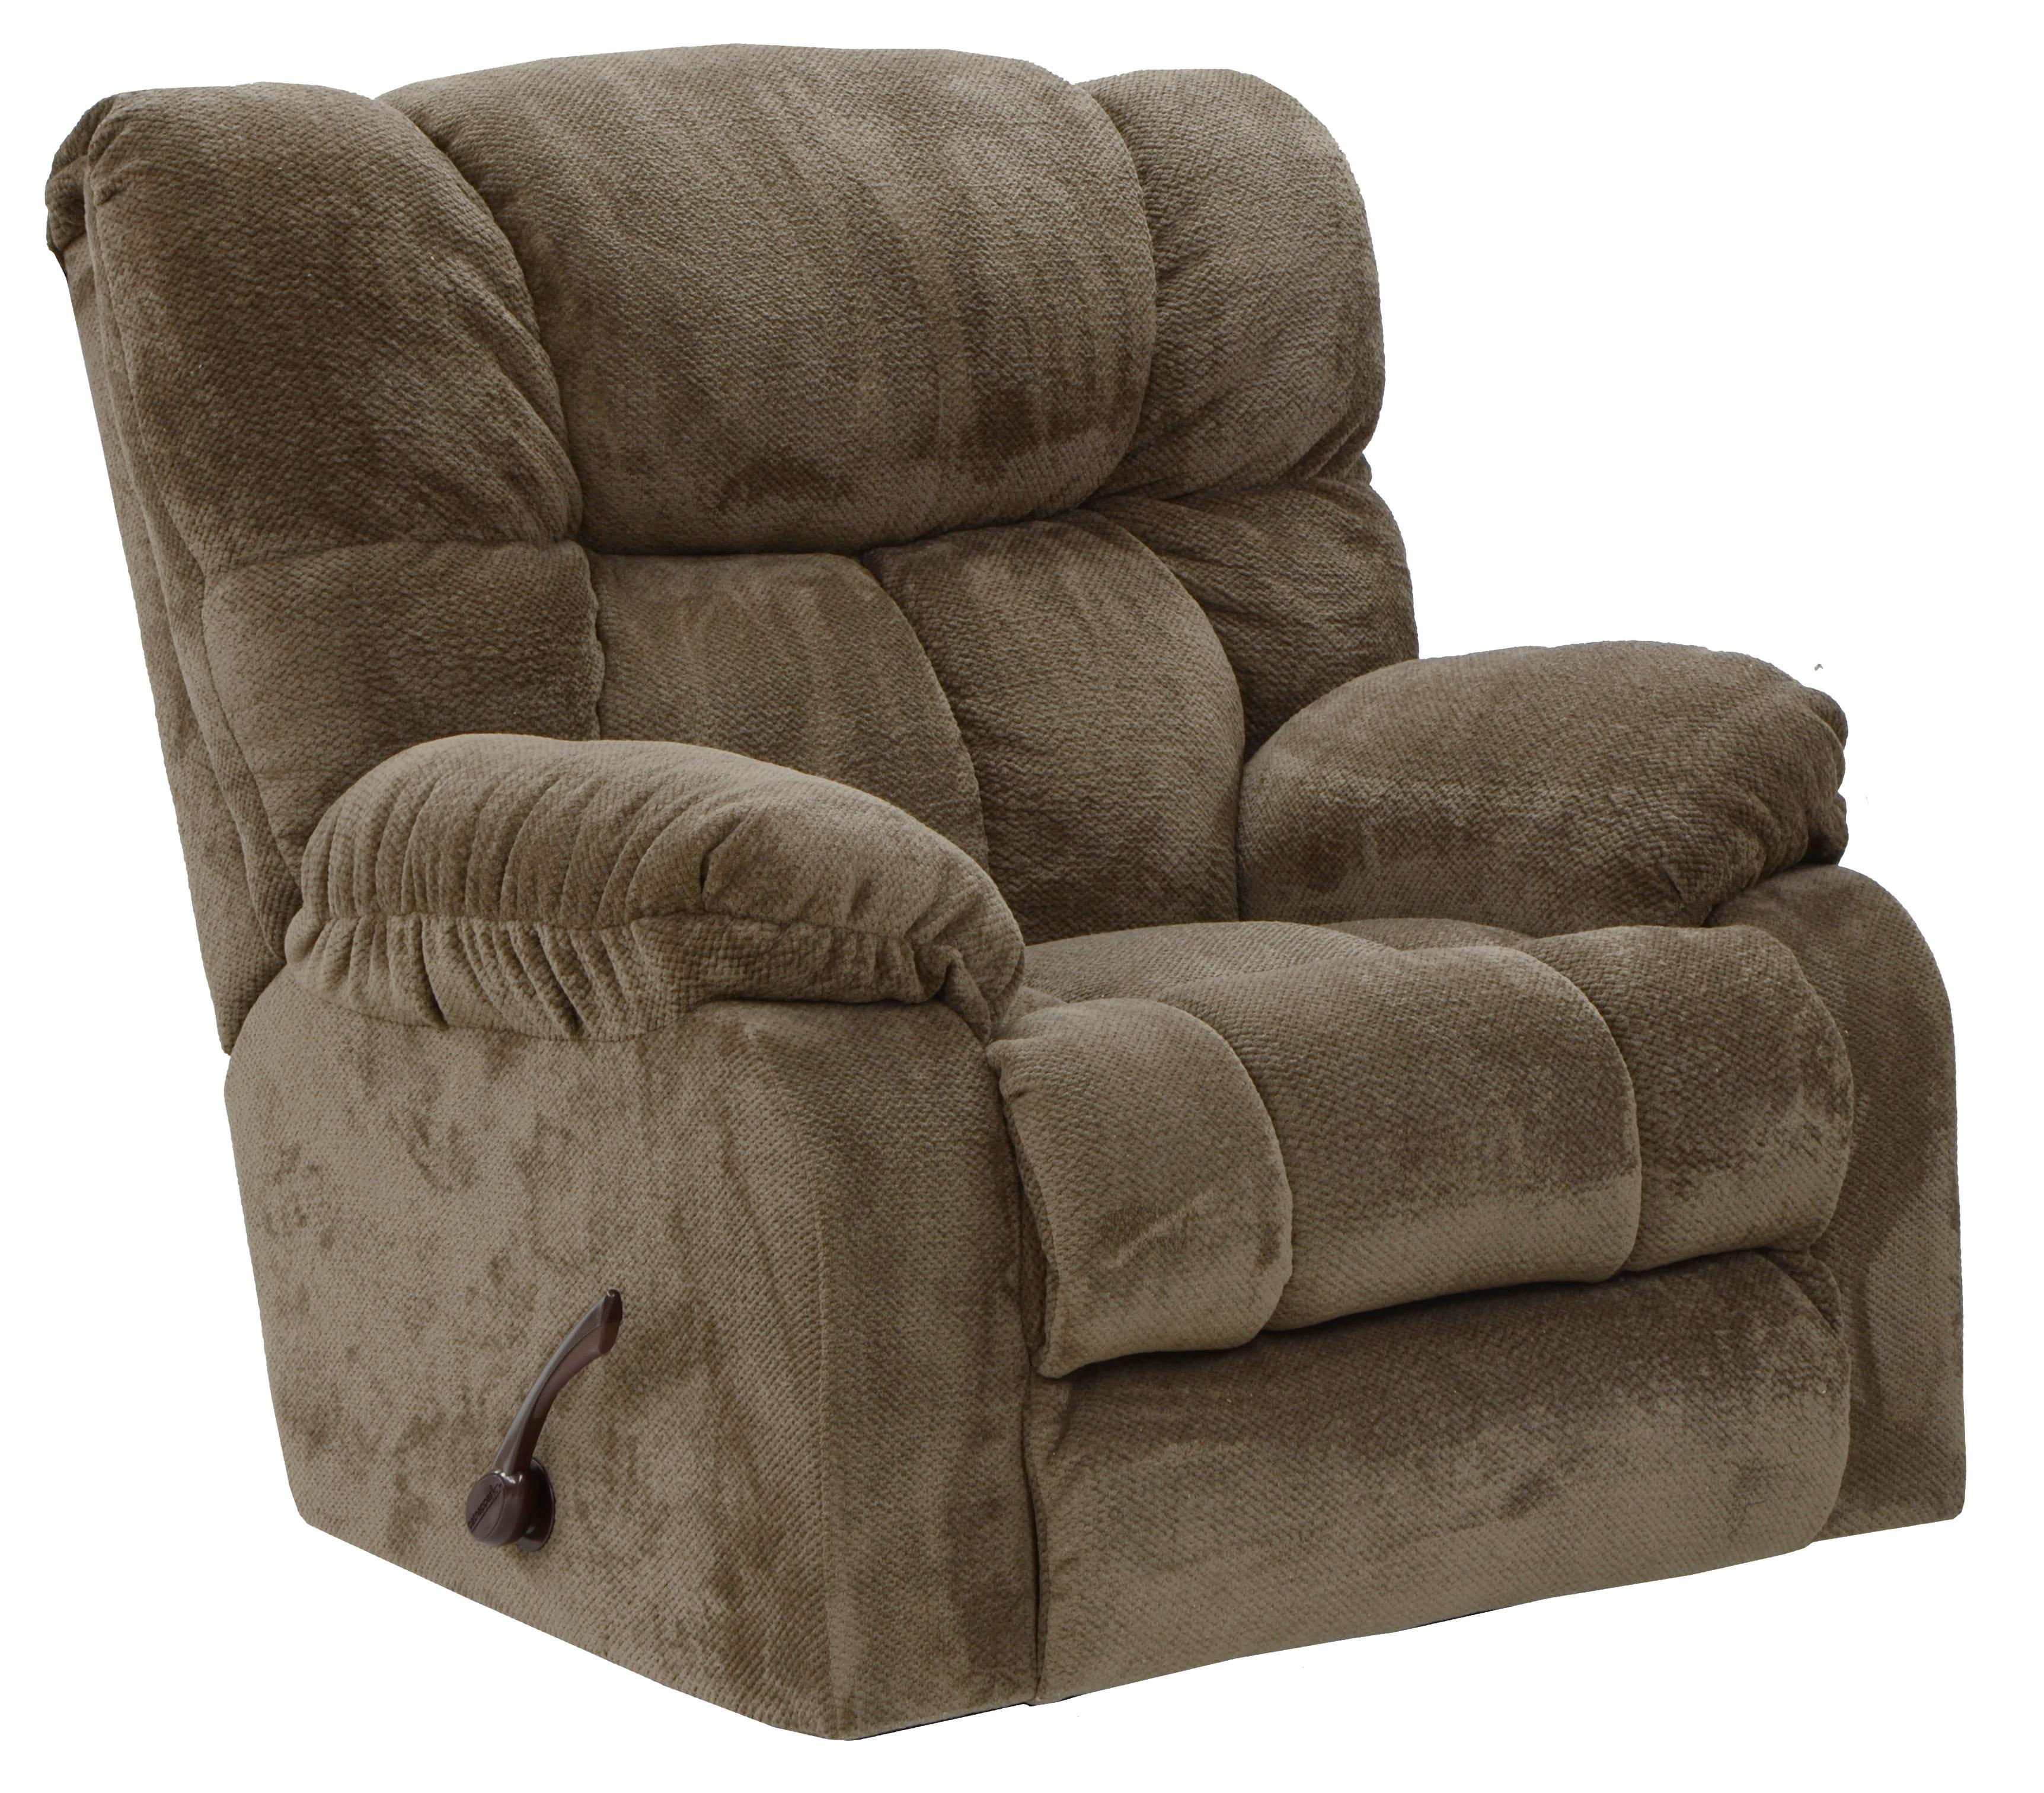 Motion Chairs And Recliners Popson Rocker Recliner By